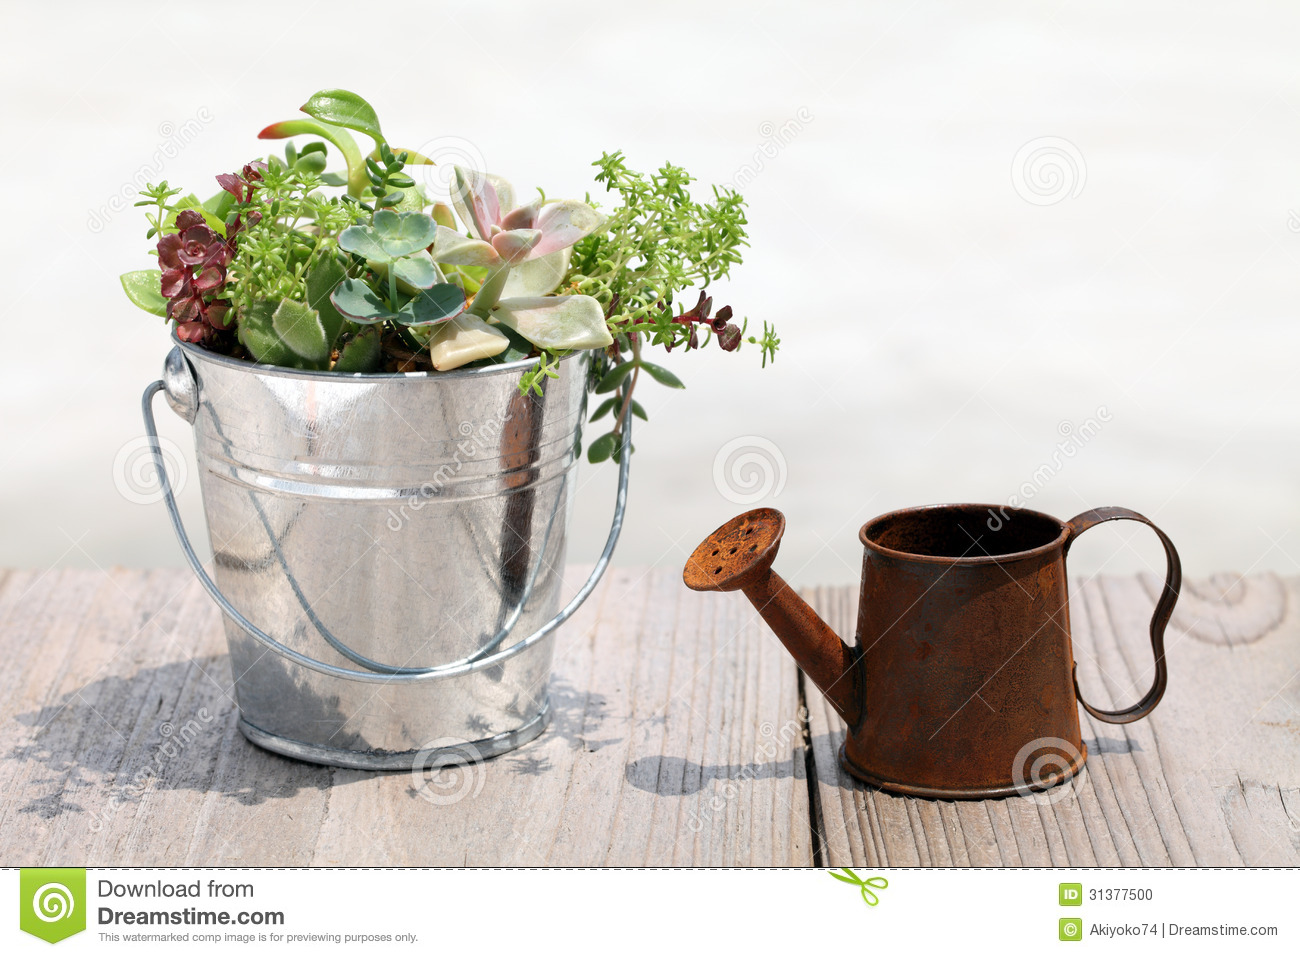 Plant Watering Cans Plant With A Watering Can Stock Photo Image 31377500